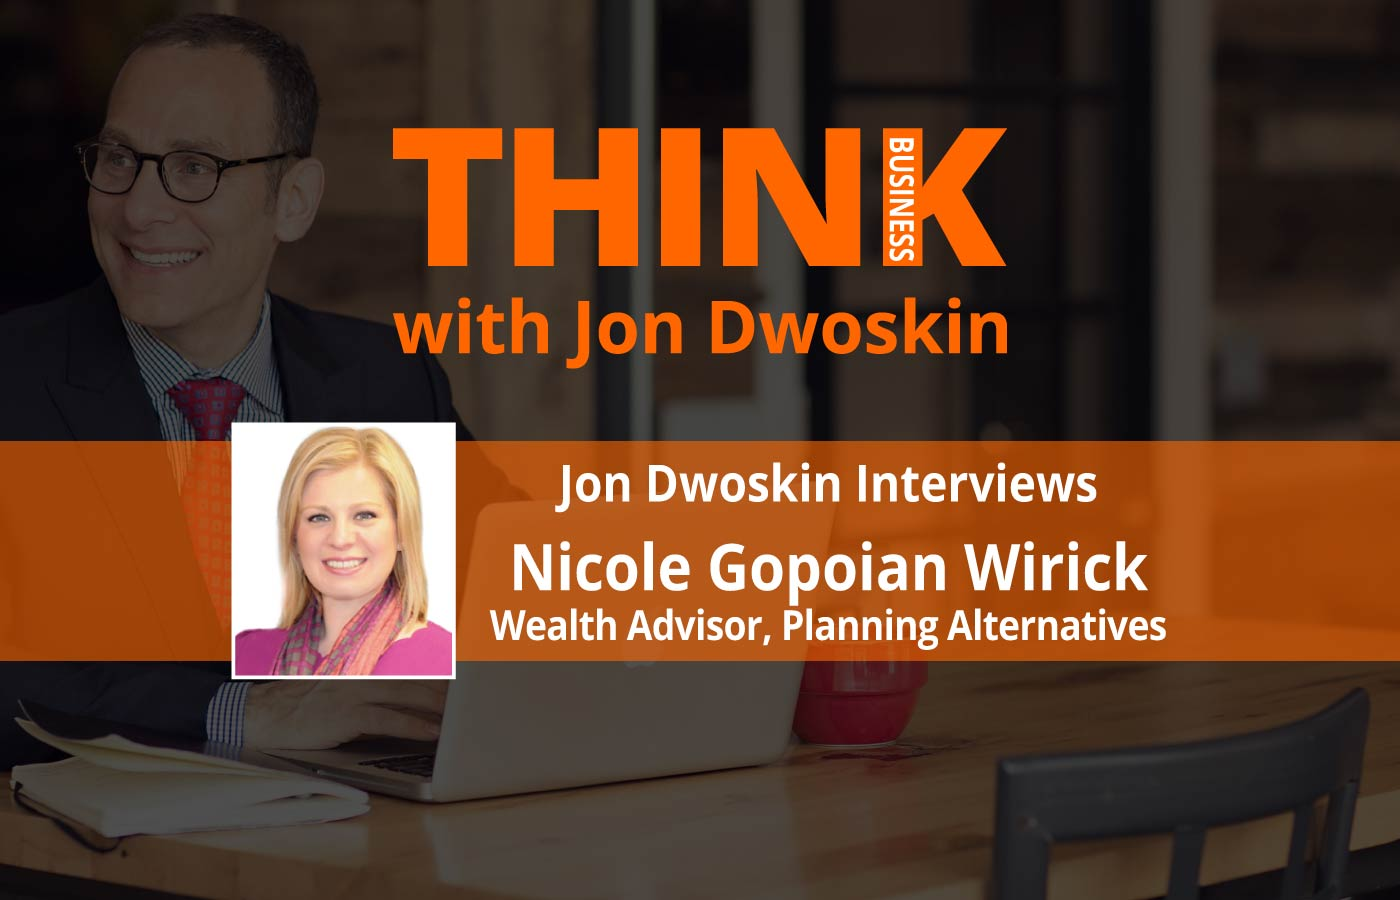 THINK Business: Jon Dwoskin Interviews Nicole Gopoian Wirick, Wealth Advisor, Planning Alternatives